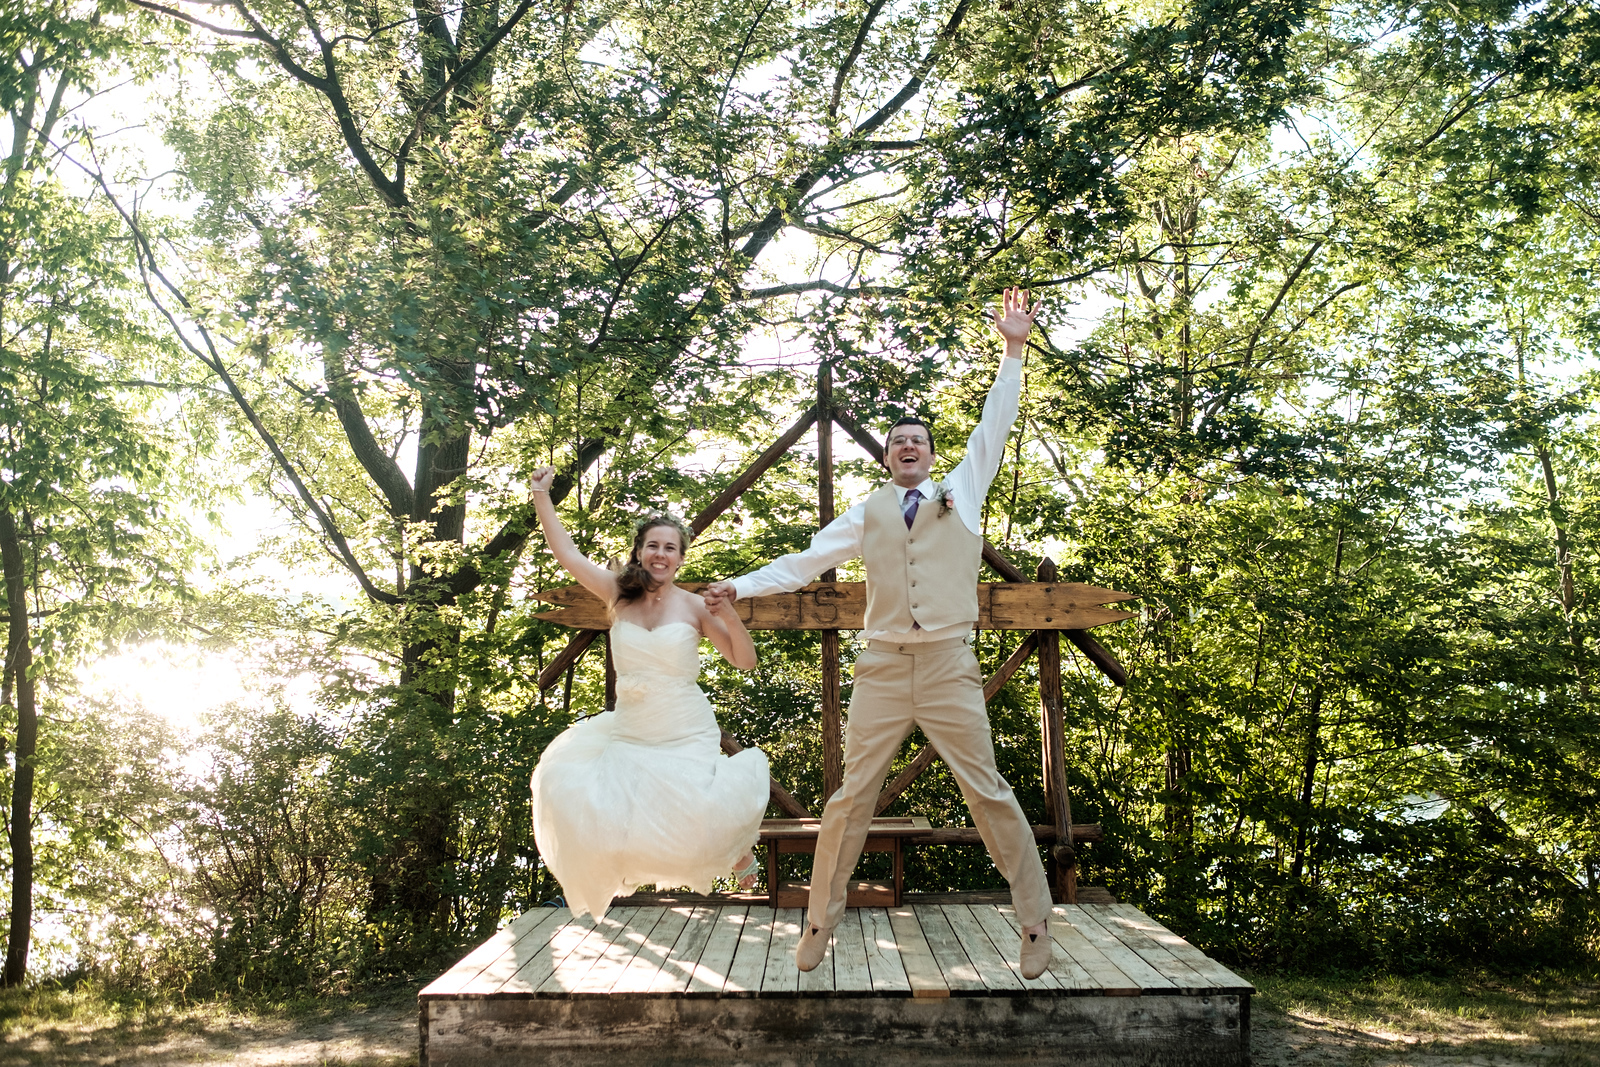 Lutherdale Summer Bible Camp Wedding Portraits